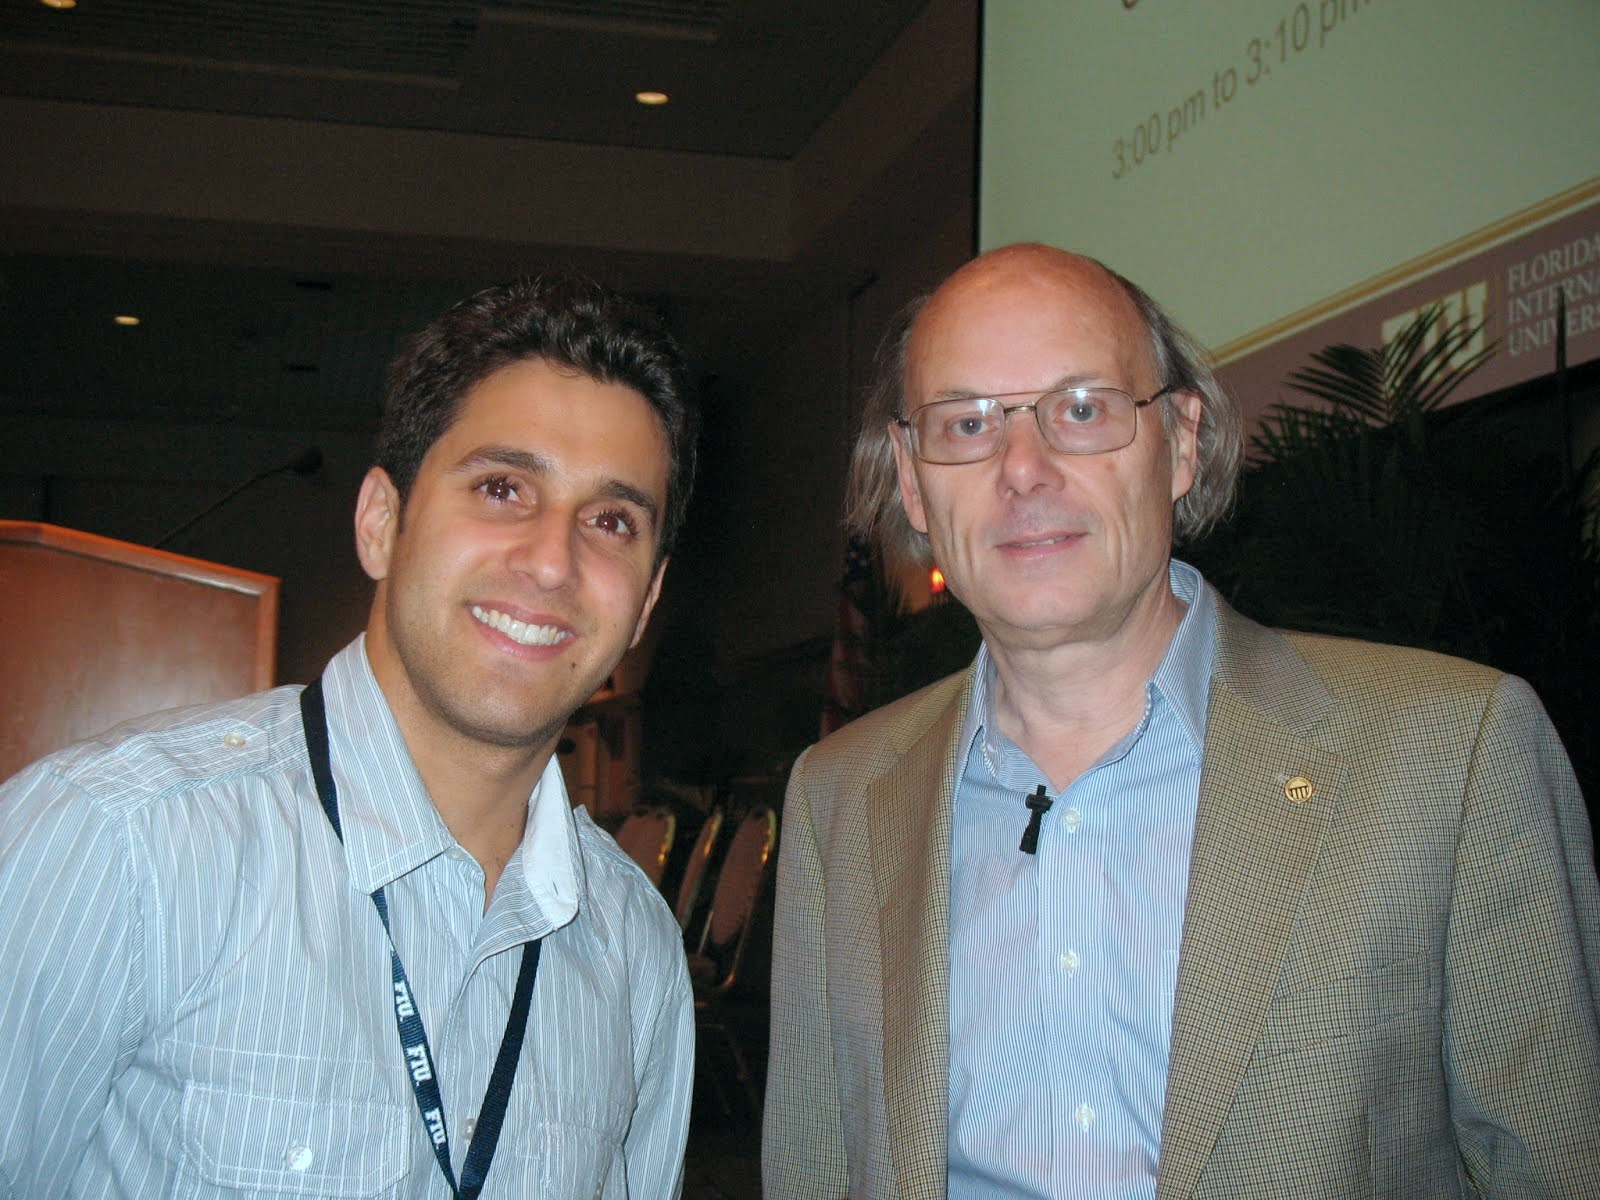 Me and Bjarne Stroustrup